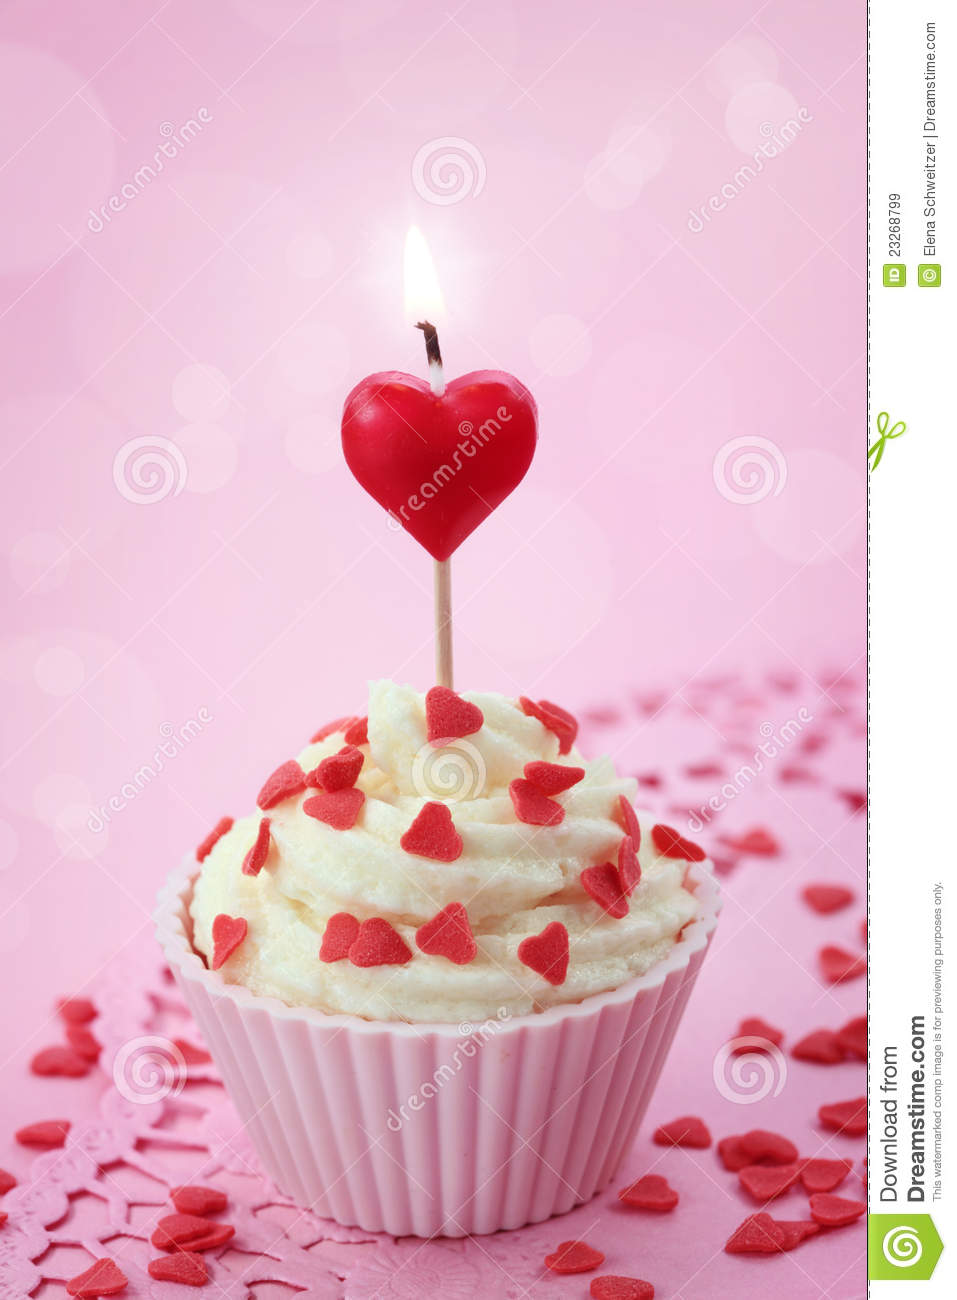 Image Result For Rose Birthday Cake With Candles